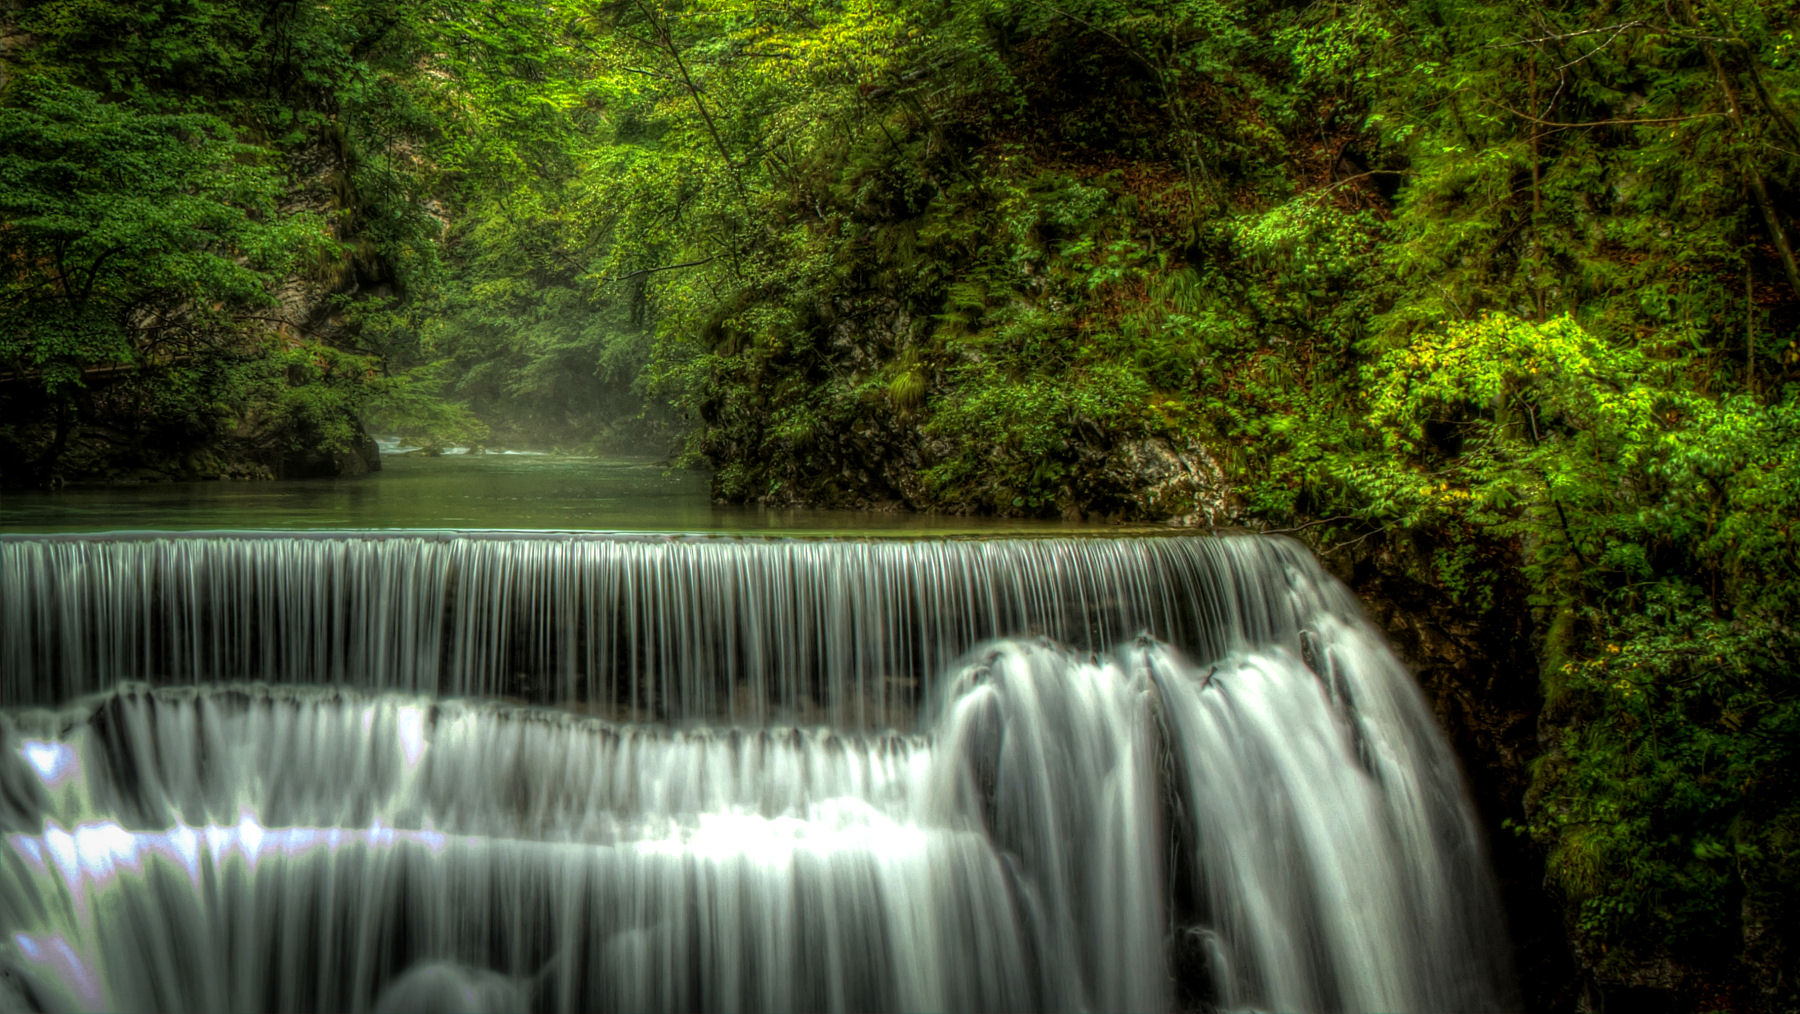 Vintgar Gorge offers clear waters, trout spotting, wooden walkways, waterfalls and more